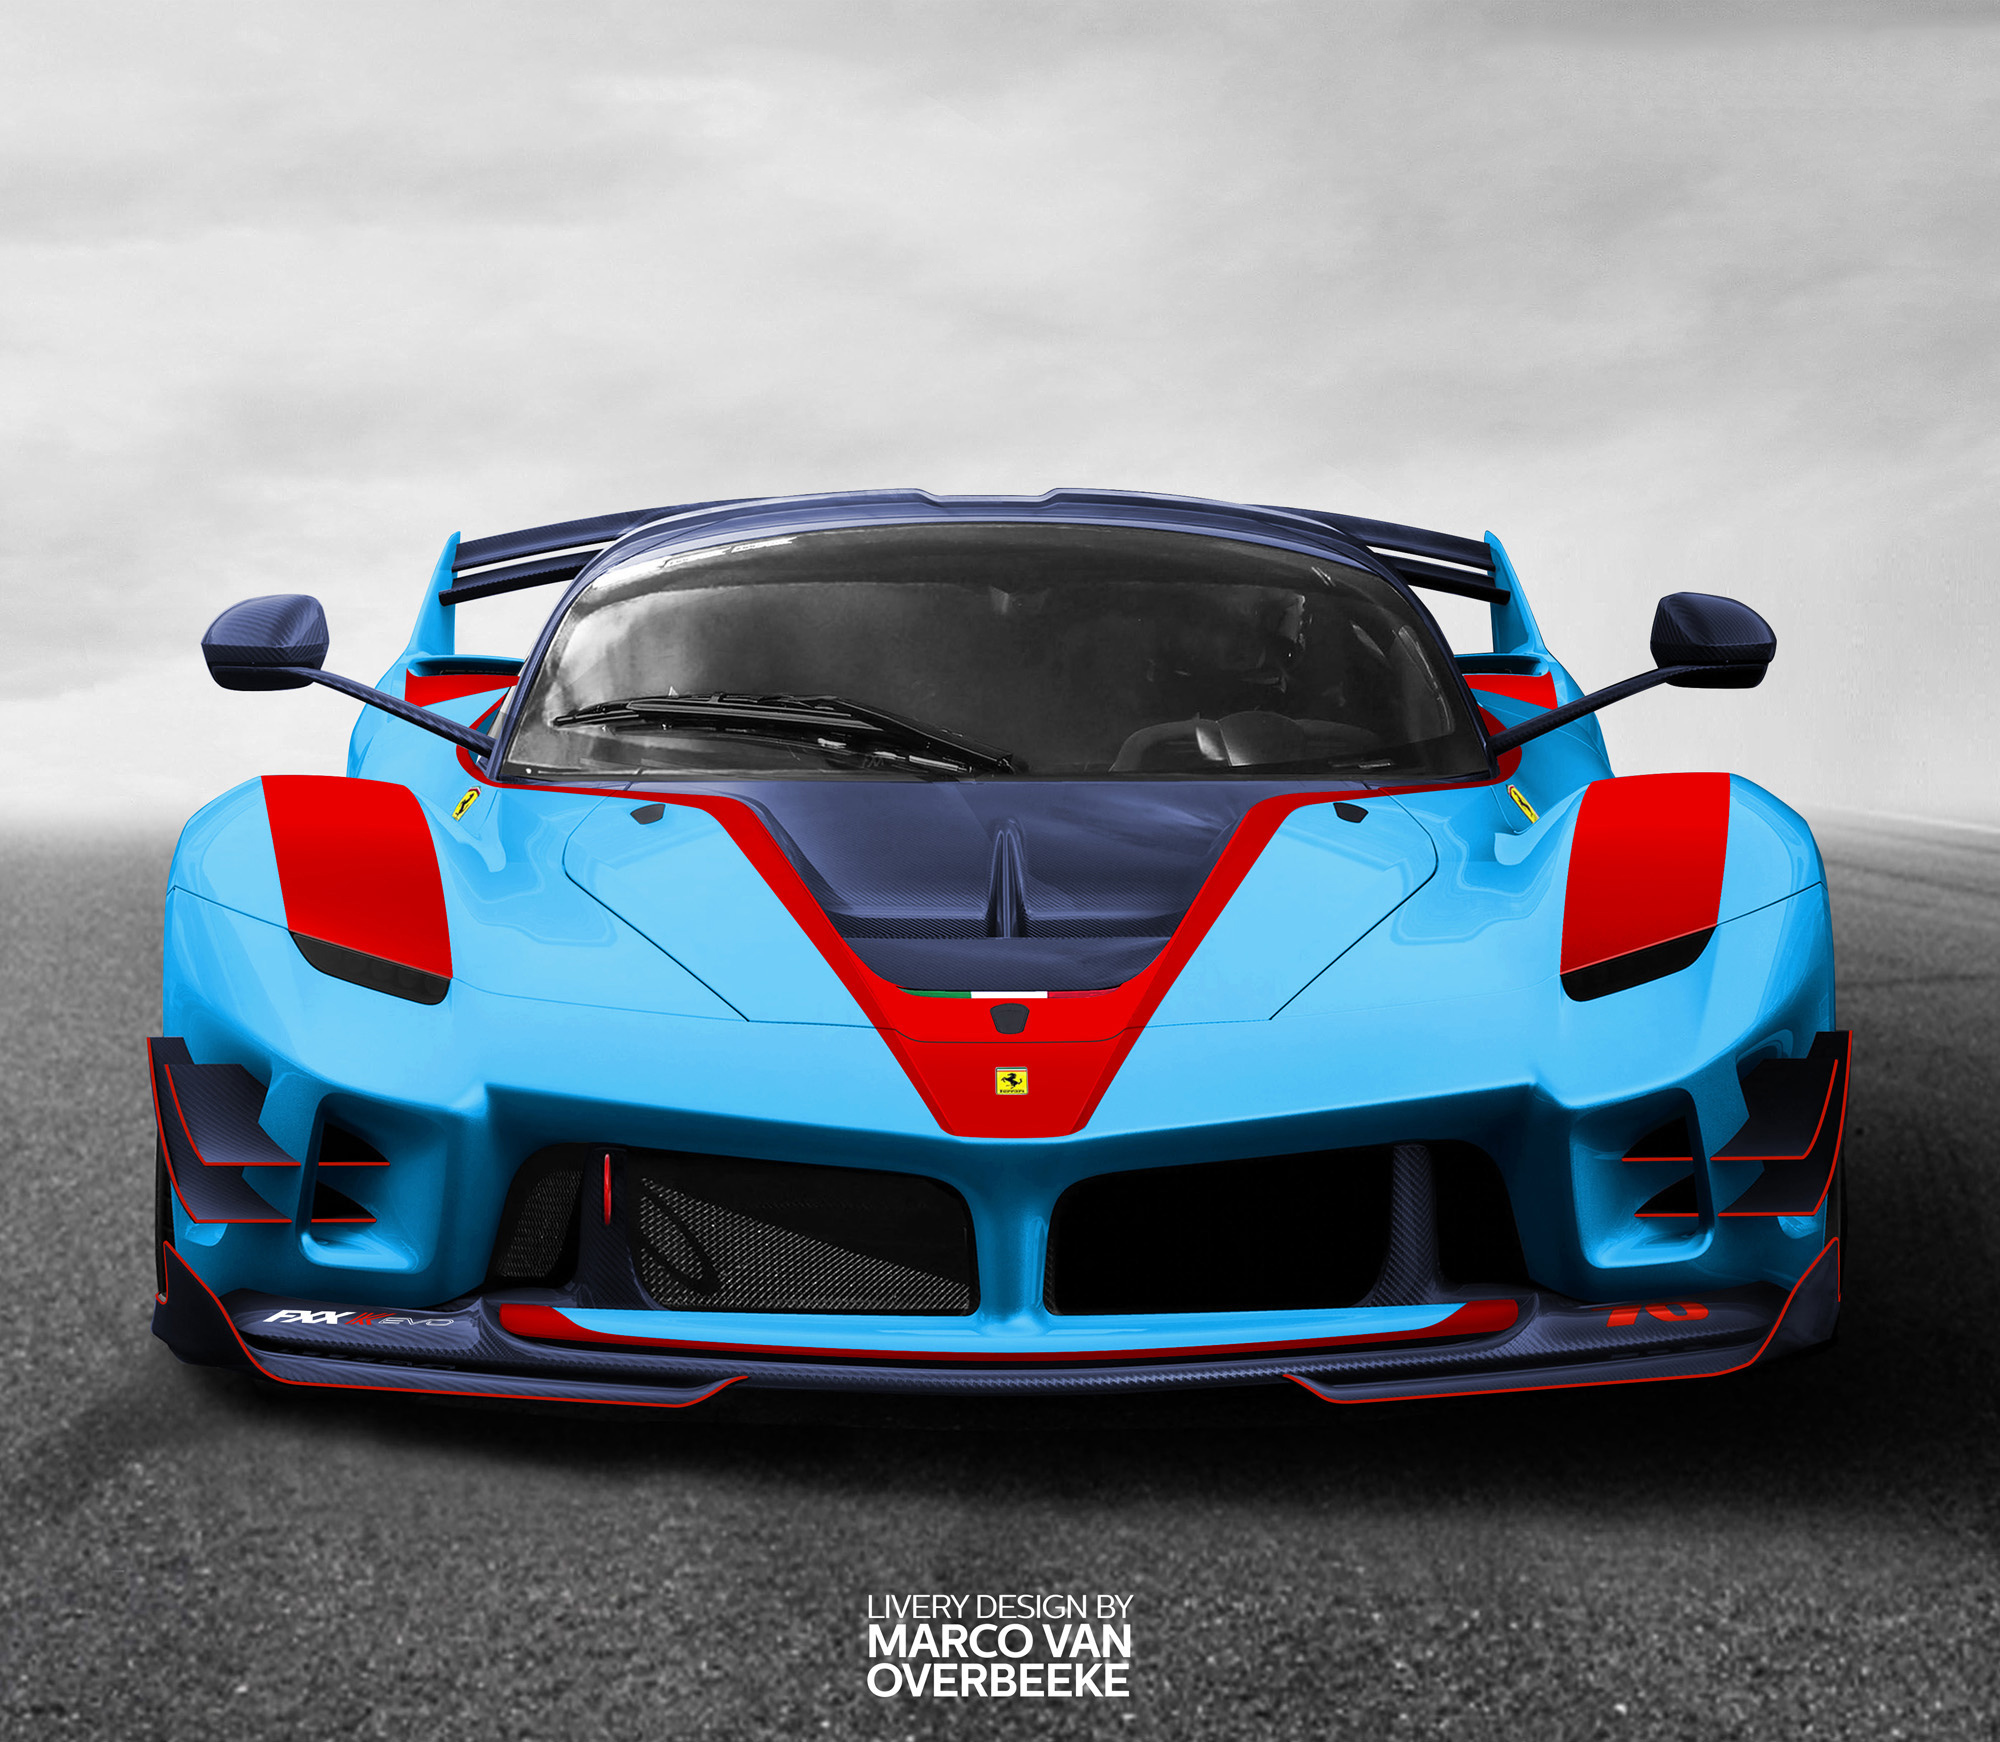 1440x900 Ferrari Laferrari Fxx K Evo 1440x900 Resolution Hd 4k Wallpapers Images Backgrounds Photos And Pictures